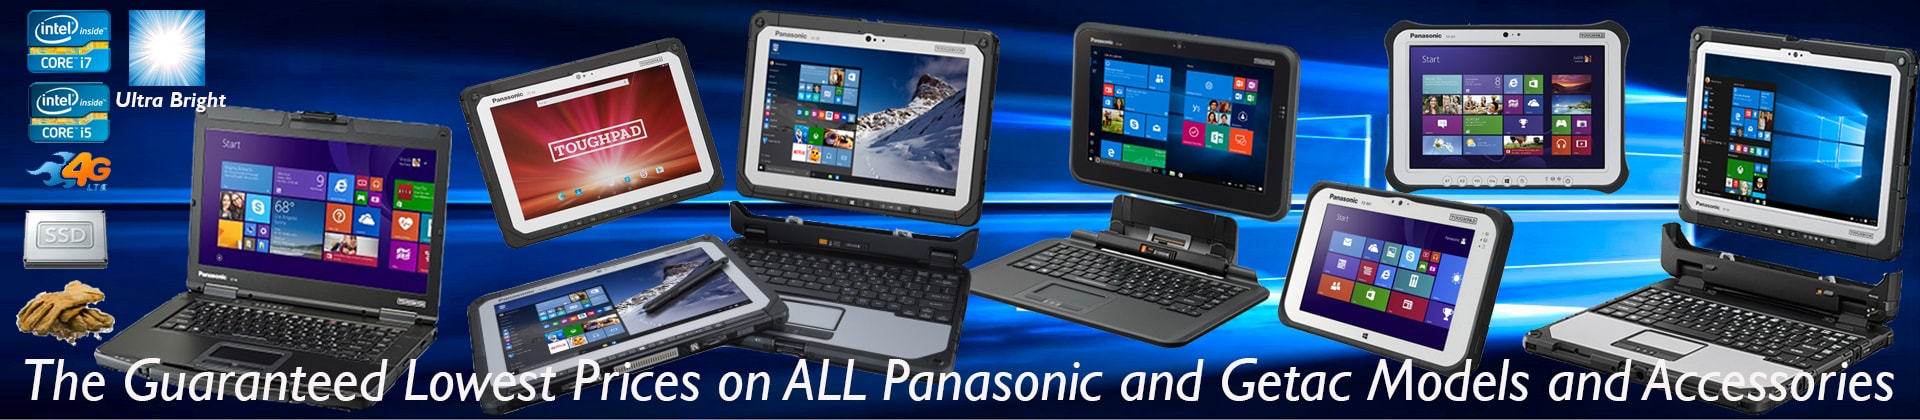 New Getac & Panasonic